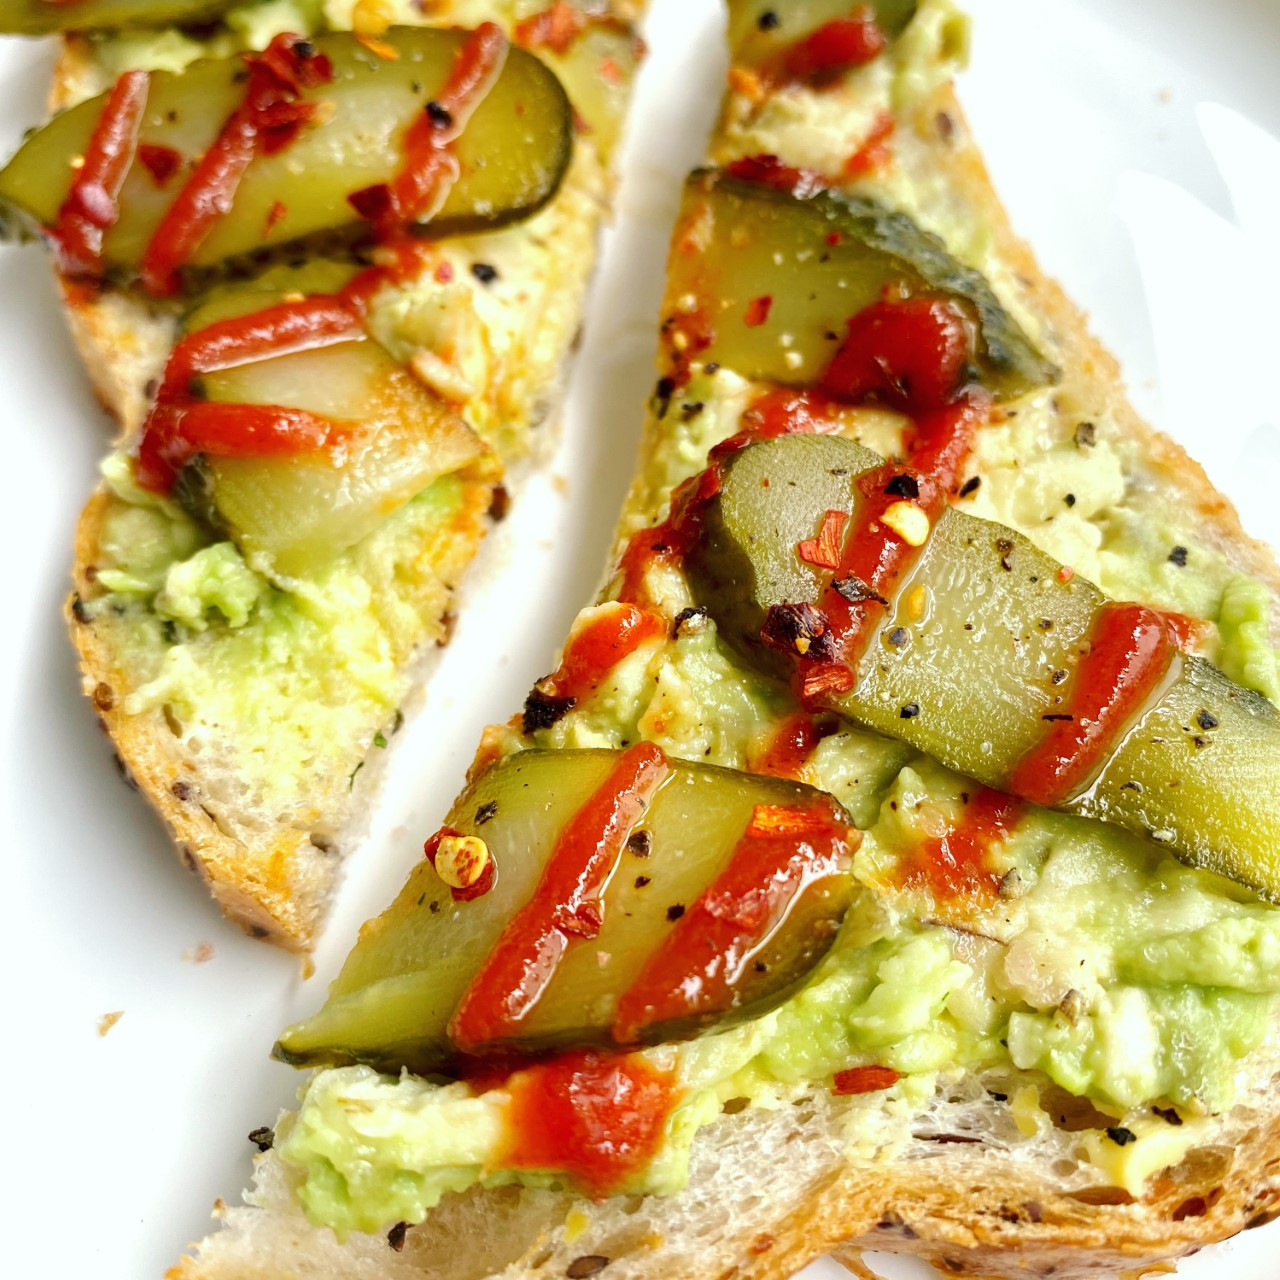 Avocado toast with pickles and sriracha hot sauce